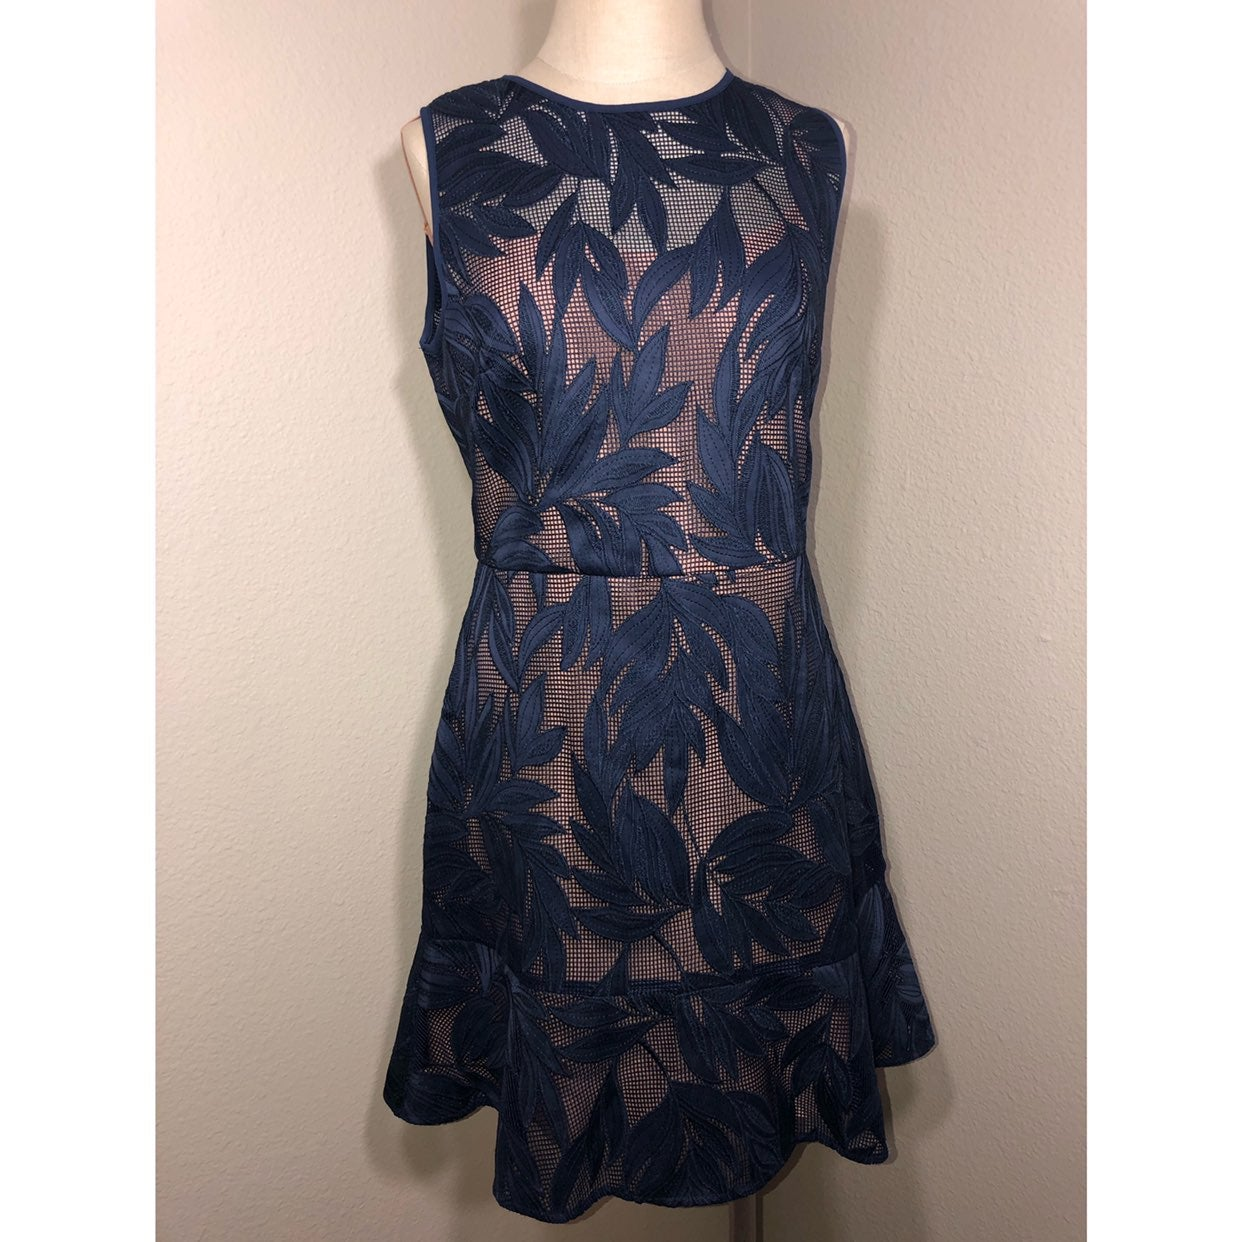 Michael kors dress medium mesh